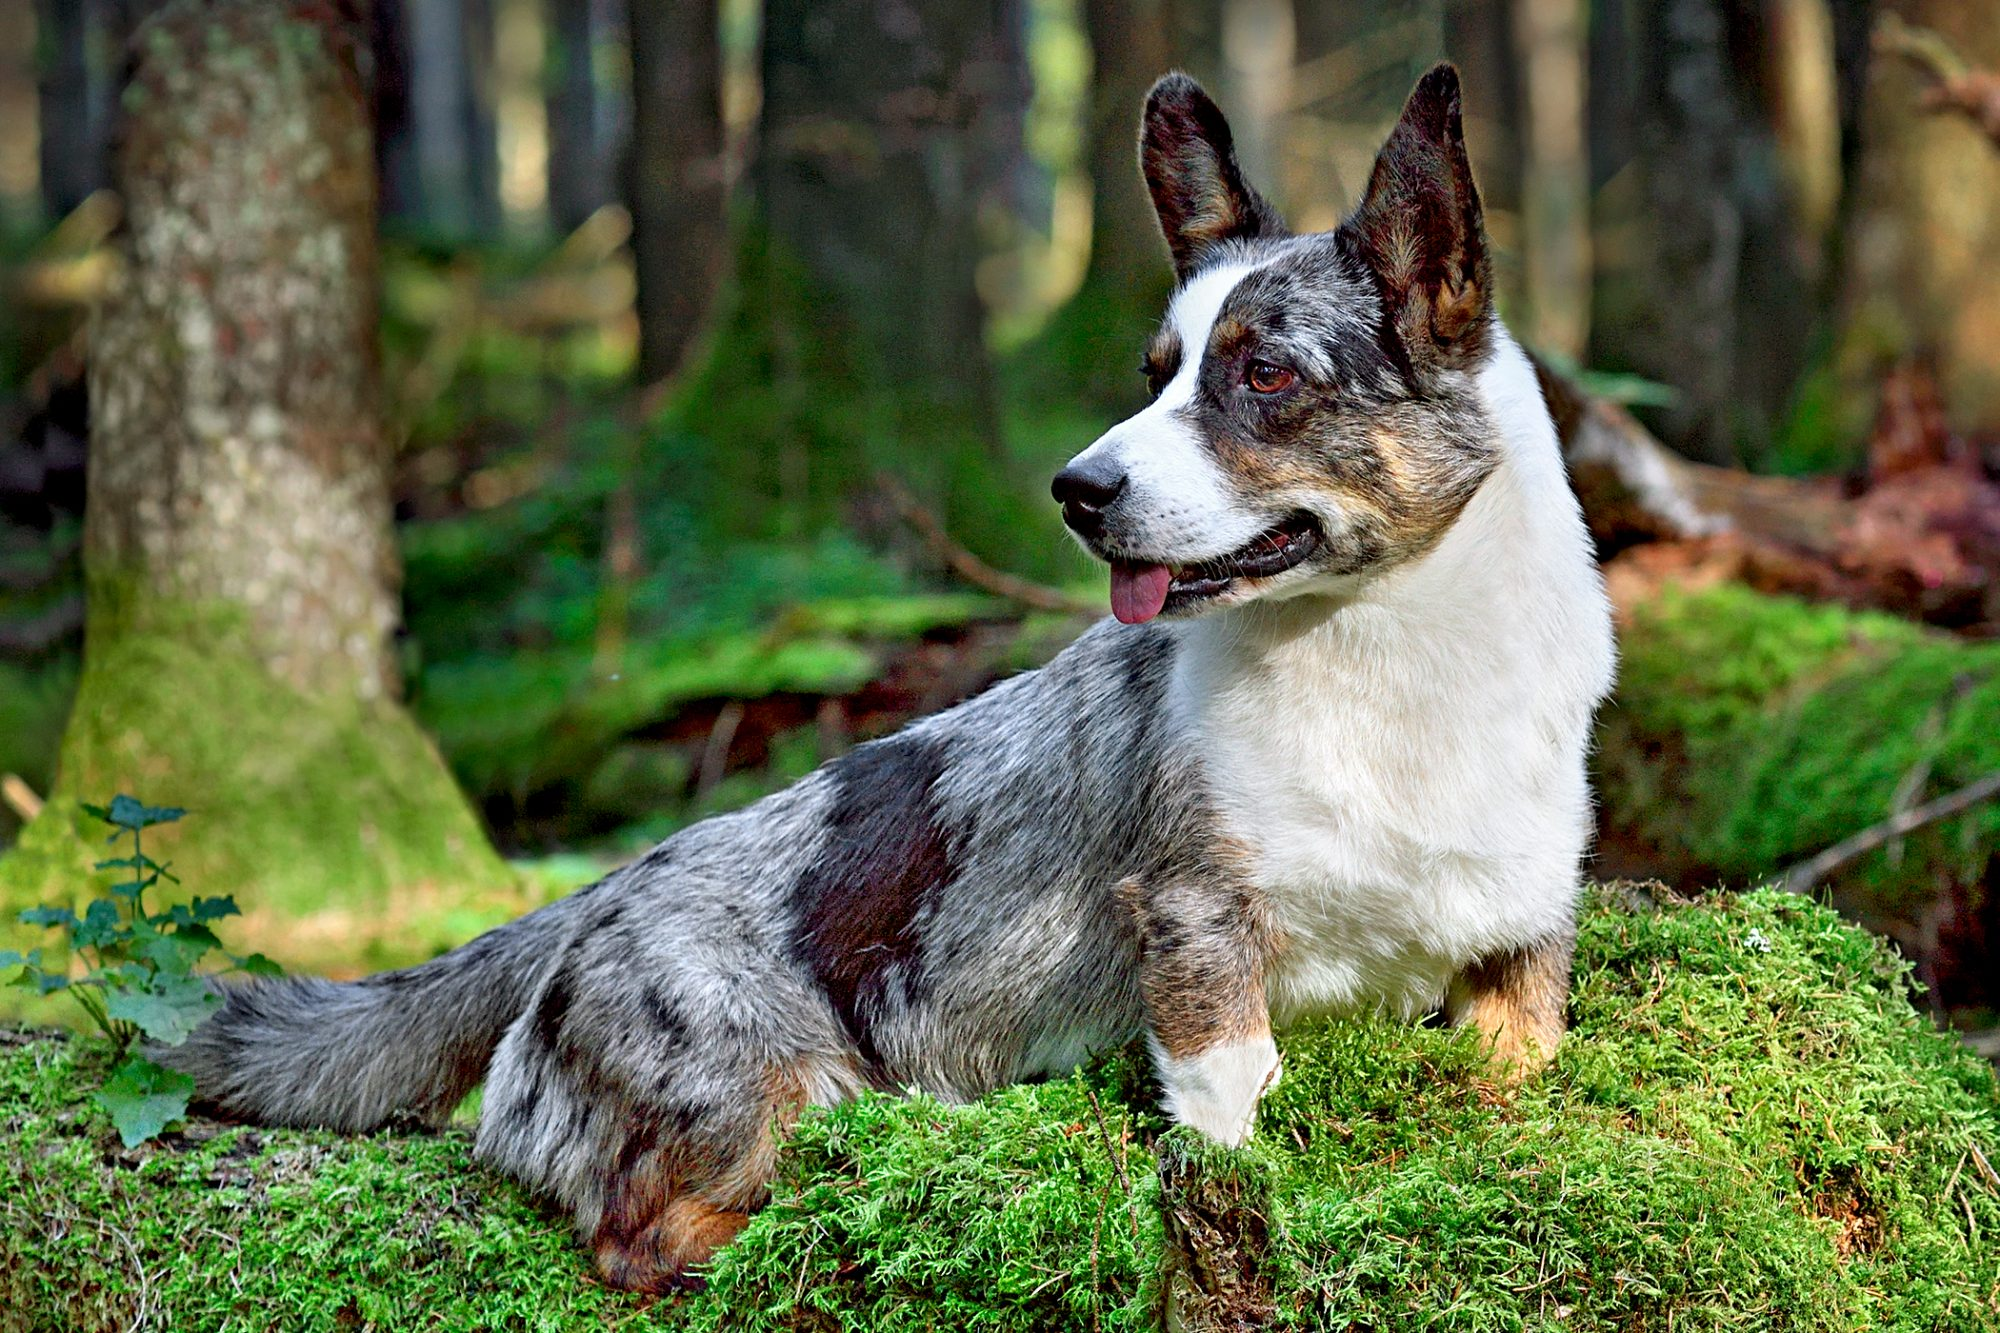 cardigan welsh corgi sitting on moss in a forest